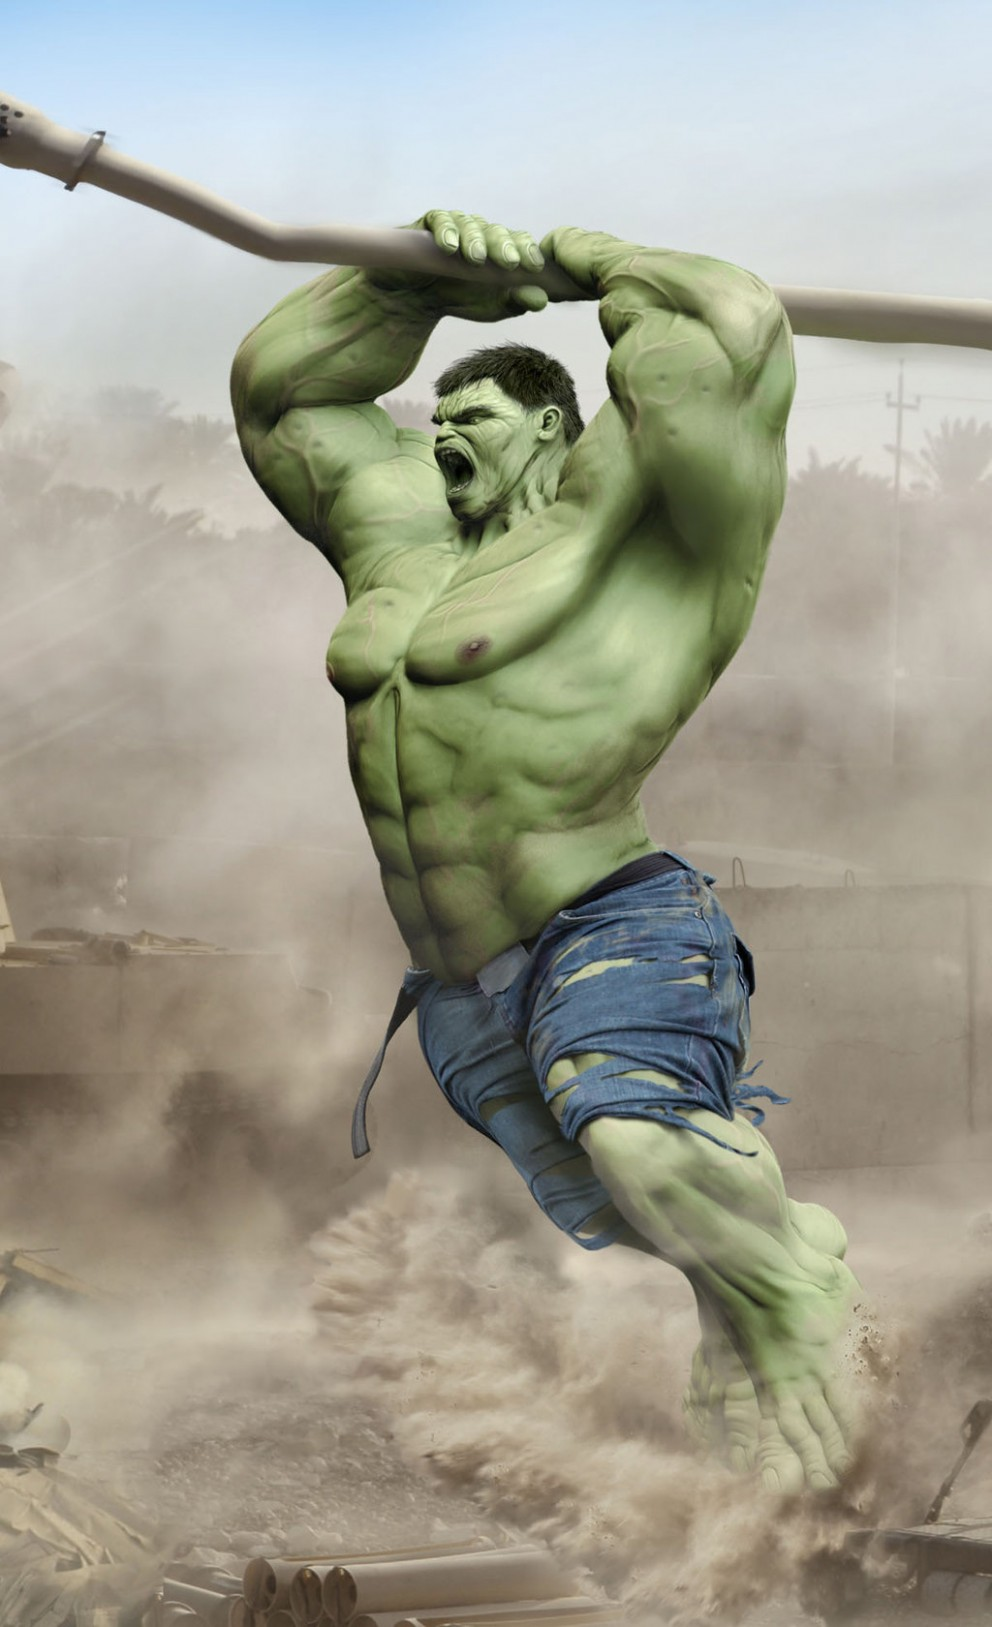 Hulk Fan Art. (Incredible Hulk Wallpaper for HTC